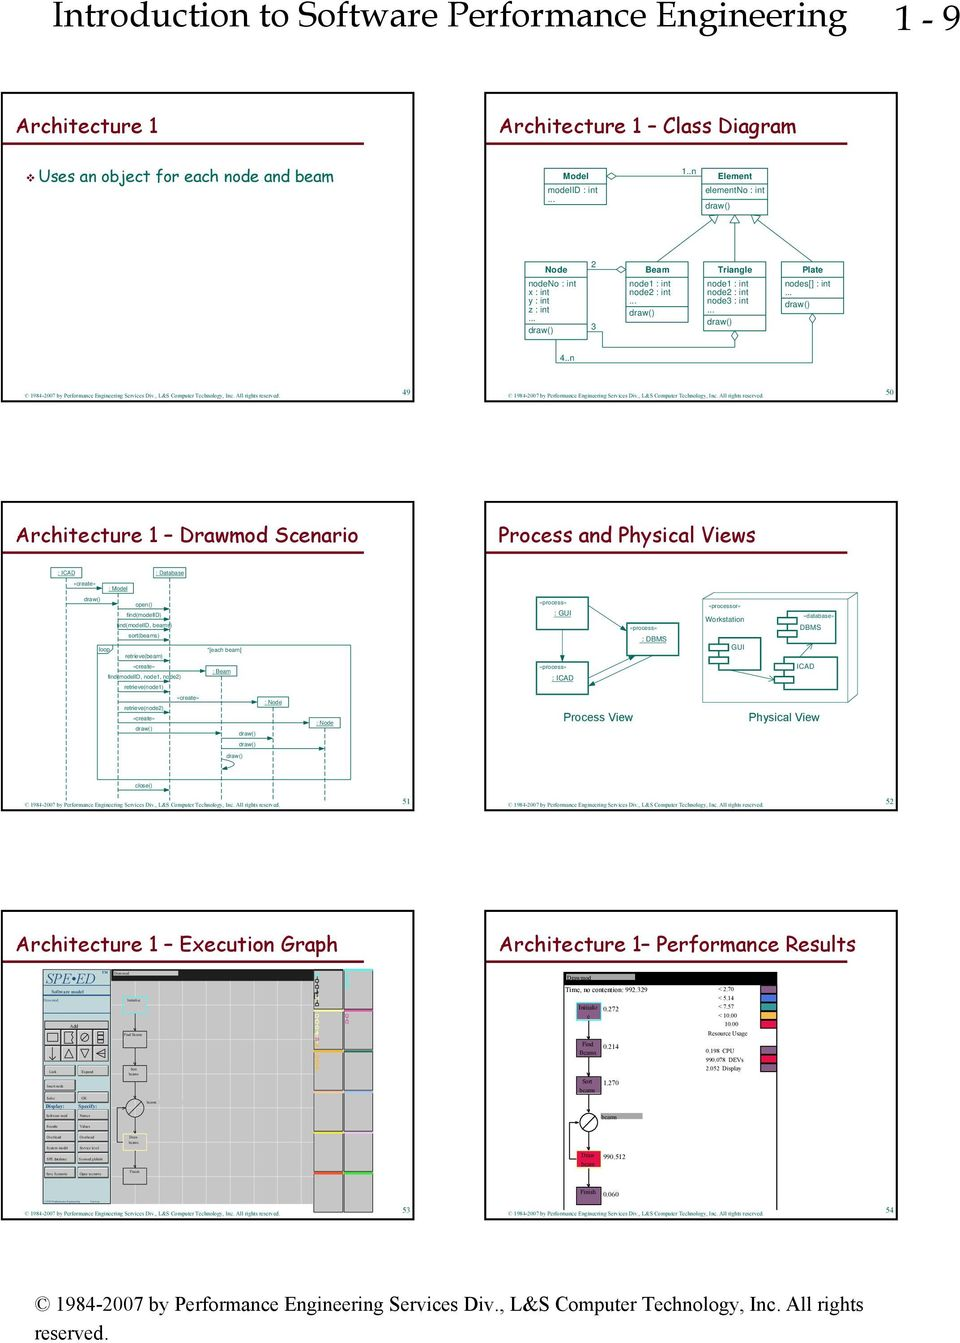 .n 49 50 Architecture 1 Drawmod Scenario Process and Physical Views : ICAD : Database : open() find(modelid) find(modelid, ) «process» : GUI «process» «processor» Workstation «database» DBMS sort()